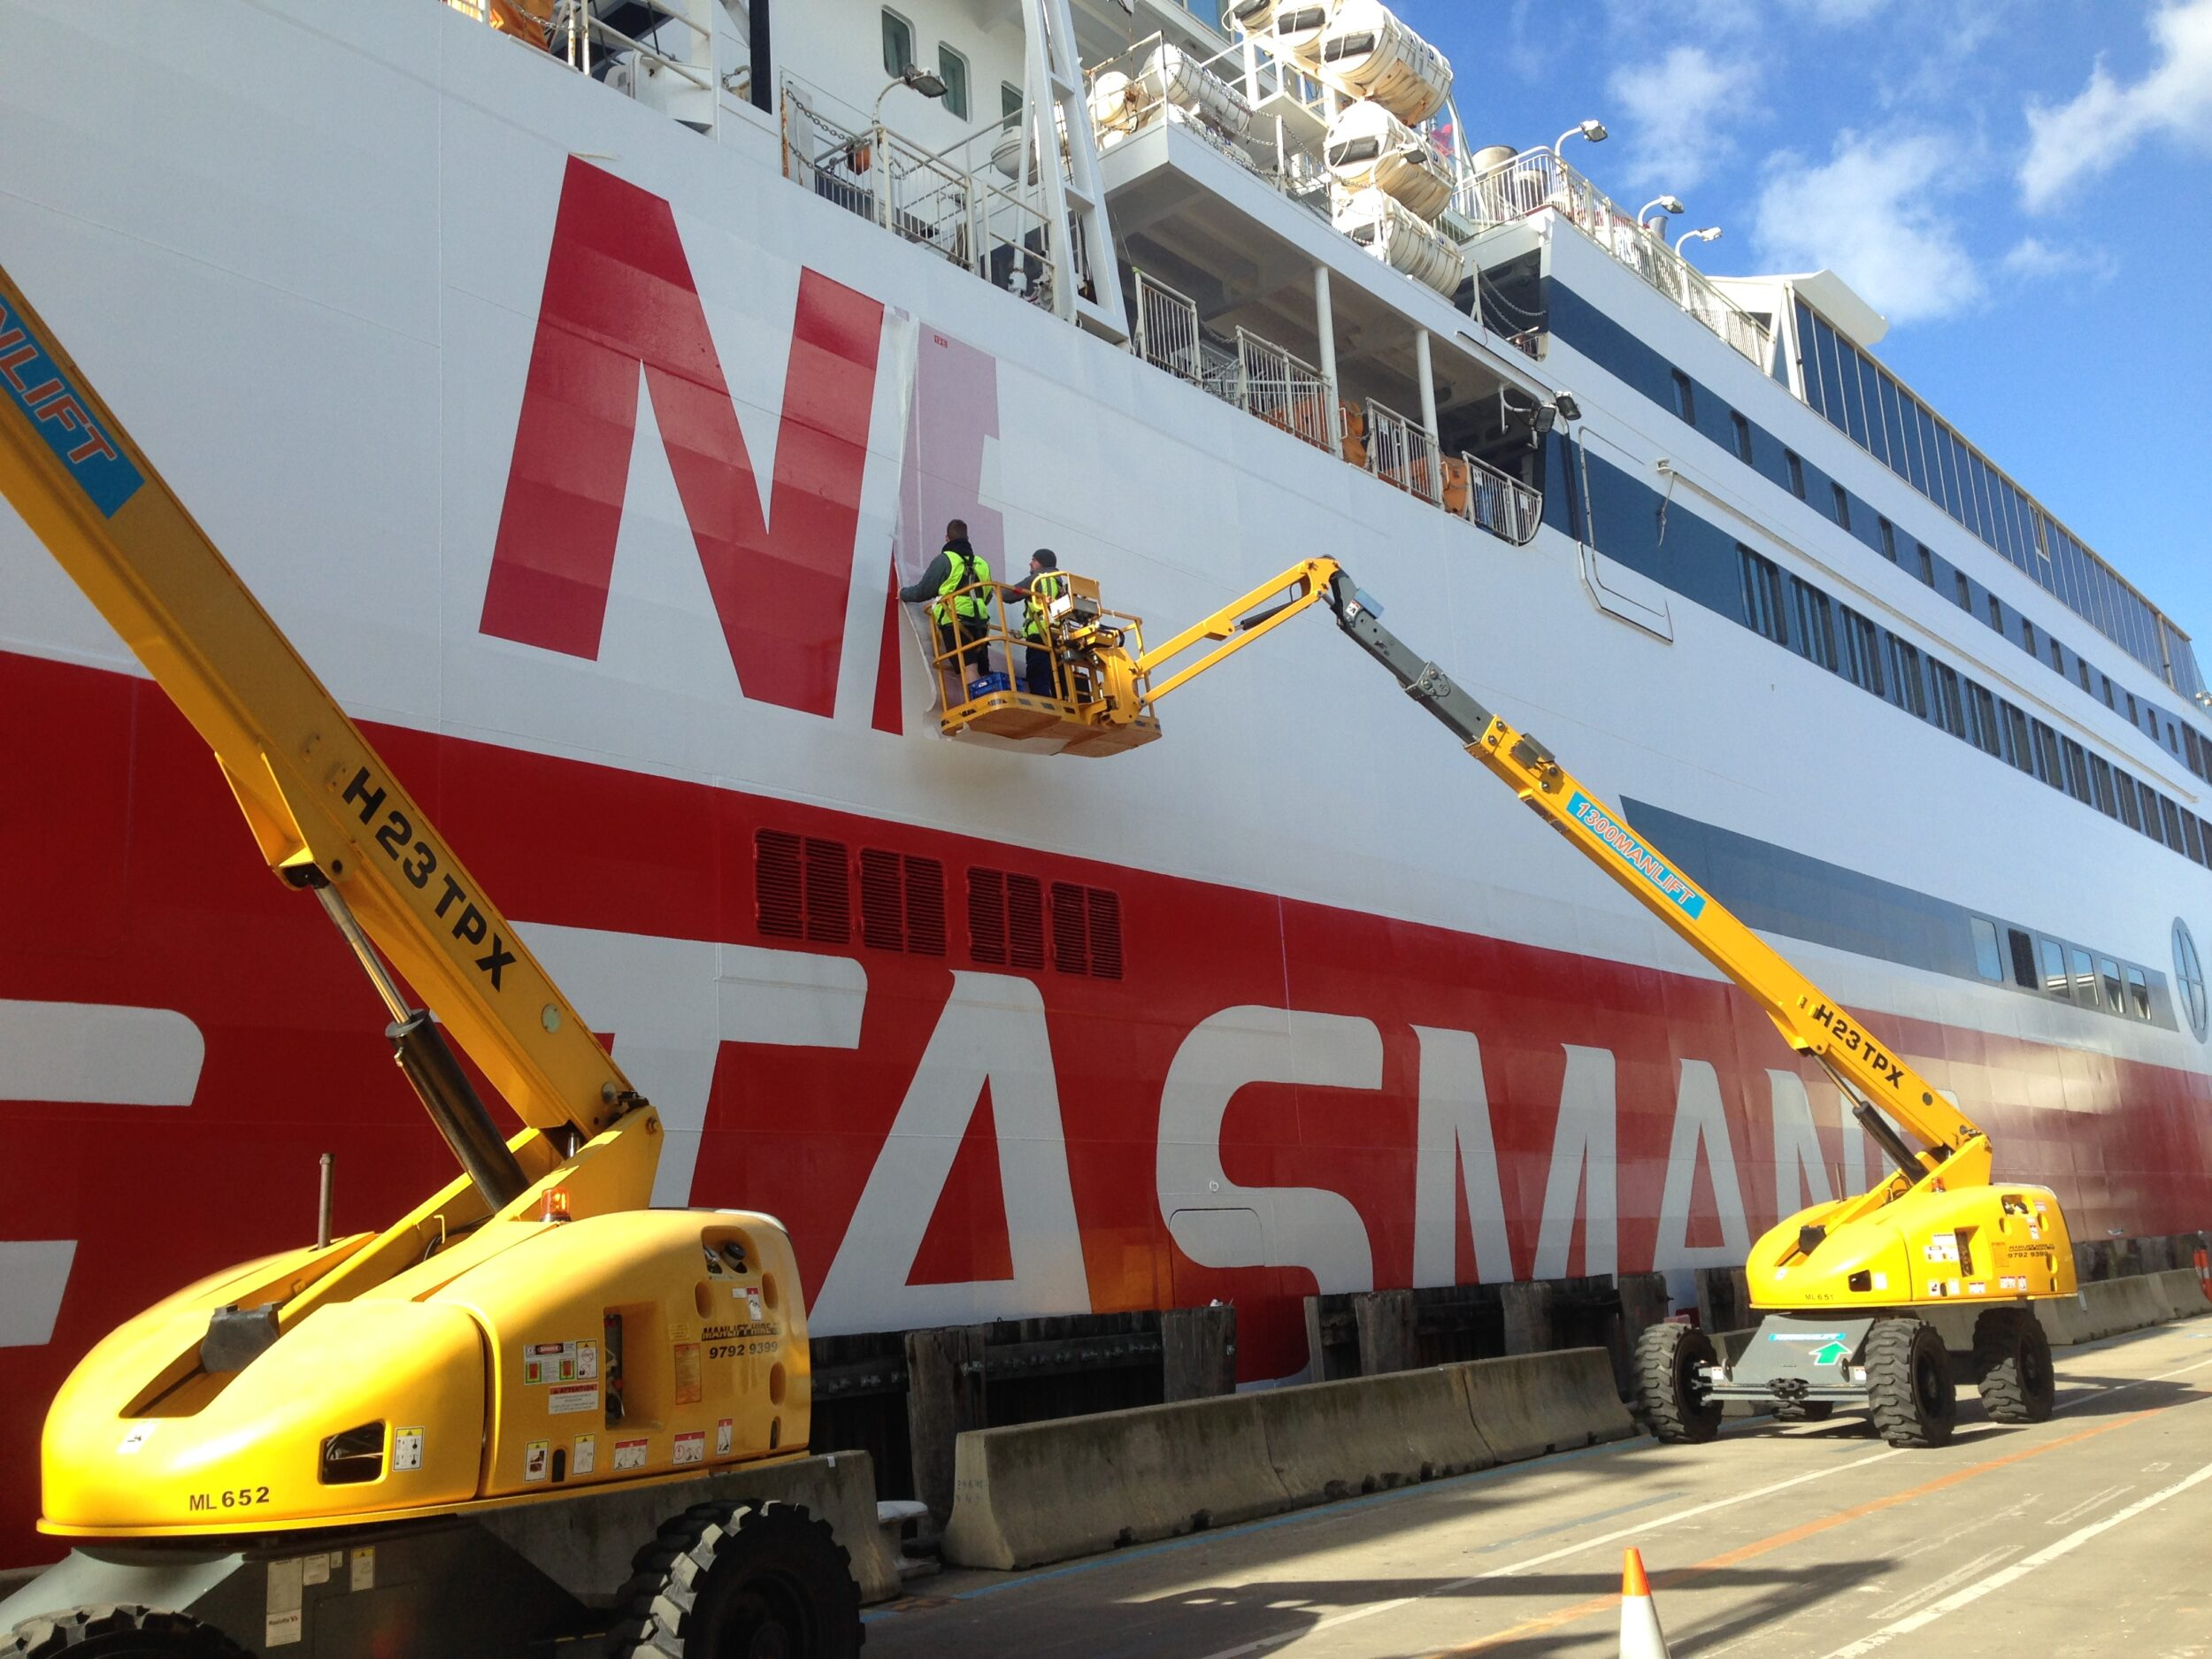 installing vinyl signage on the spirit of tasmania in a cherry picker